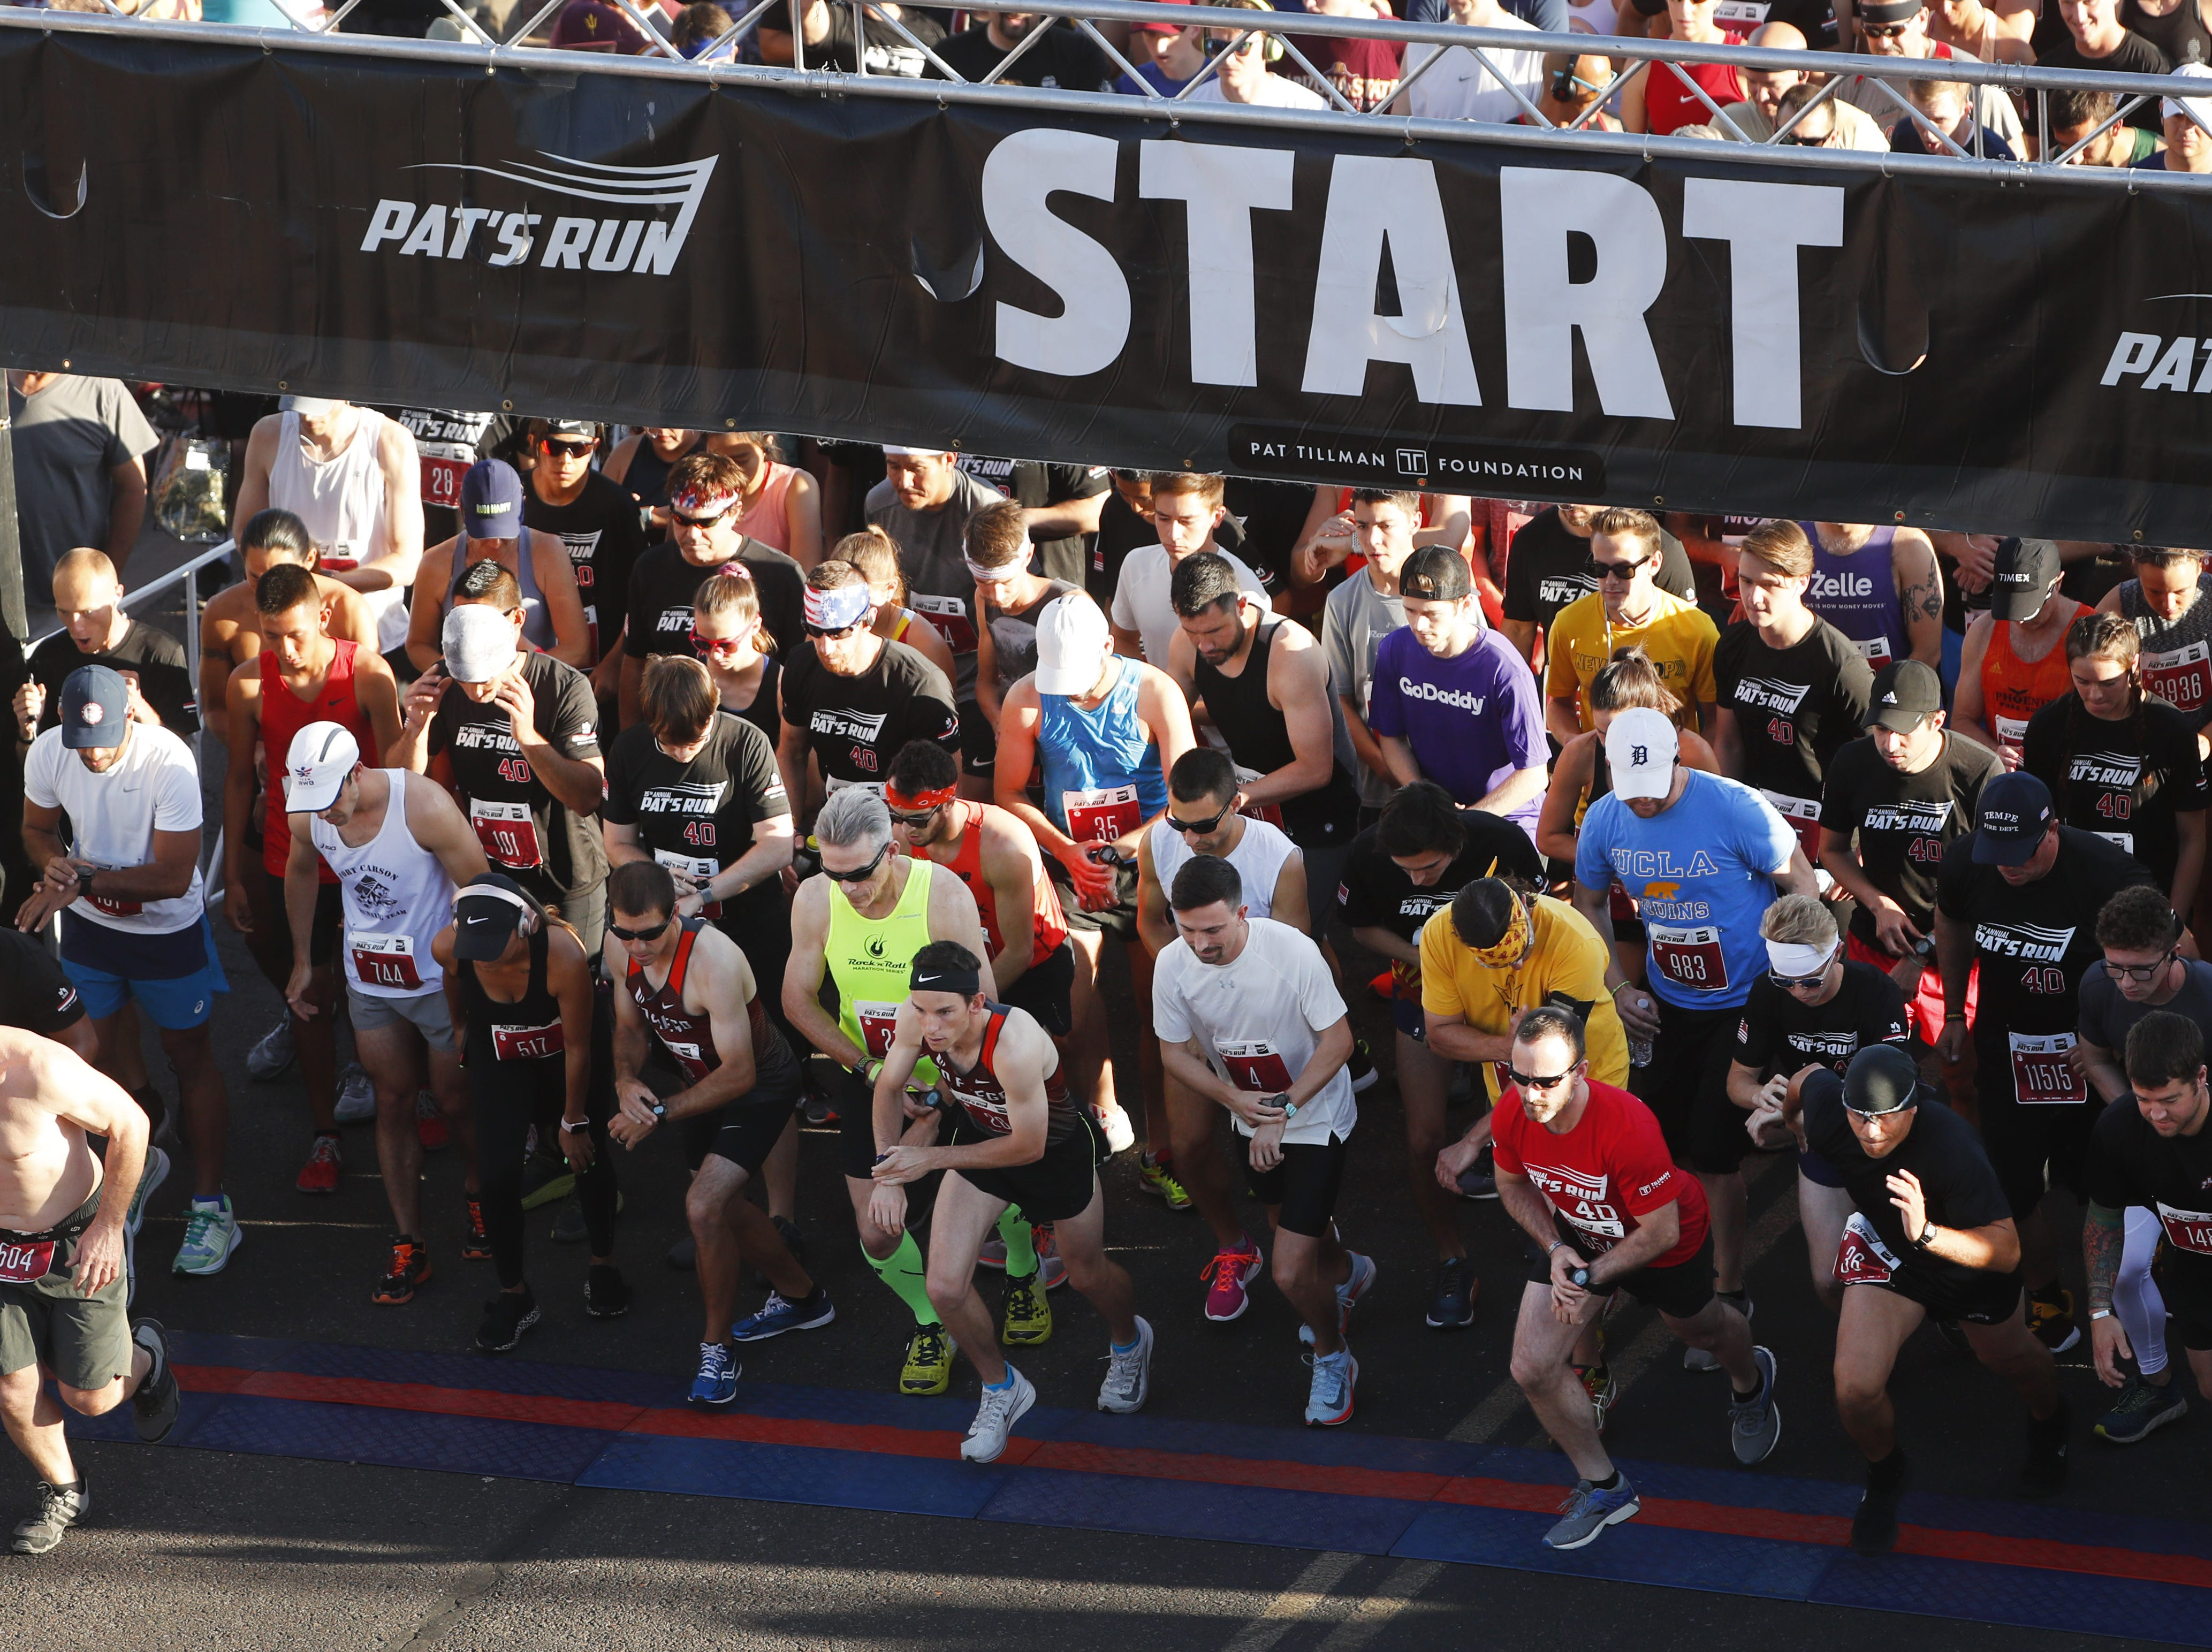 Runners take off from the starting line during Pat's Run 2019 in Tempe, Ariz. on April 27, 2019.